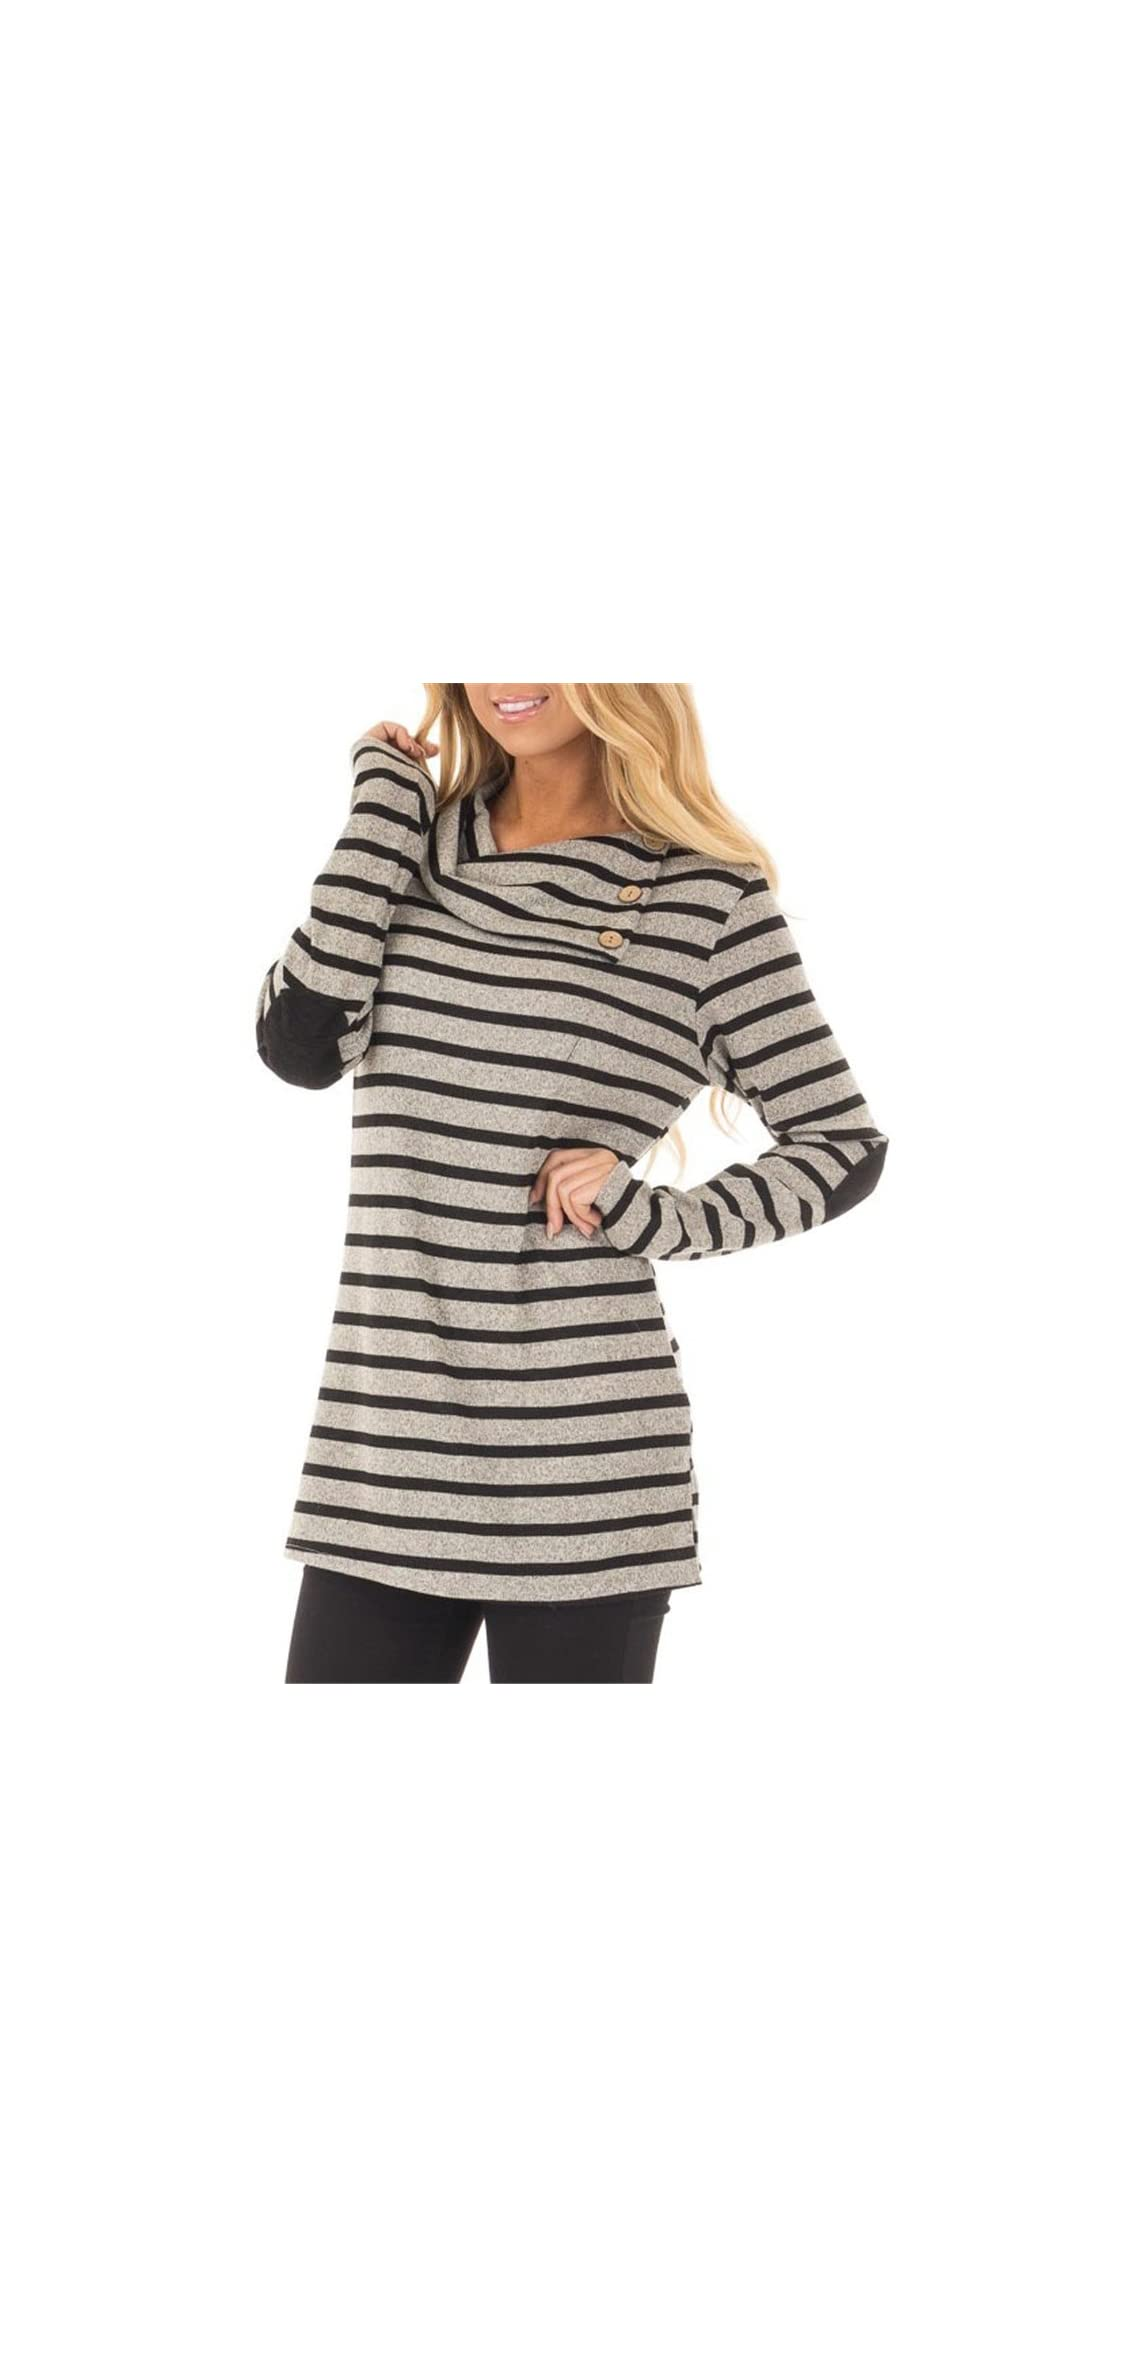 Women's Long Sleeve Striped Button Cowl Neck Tunic Tops